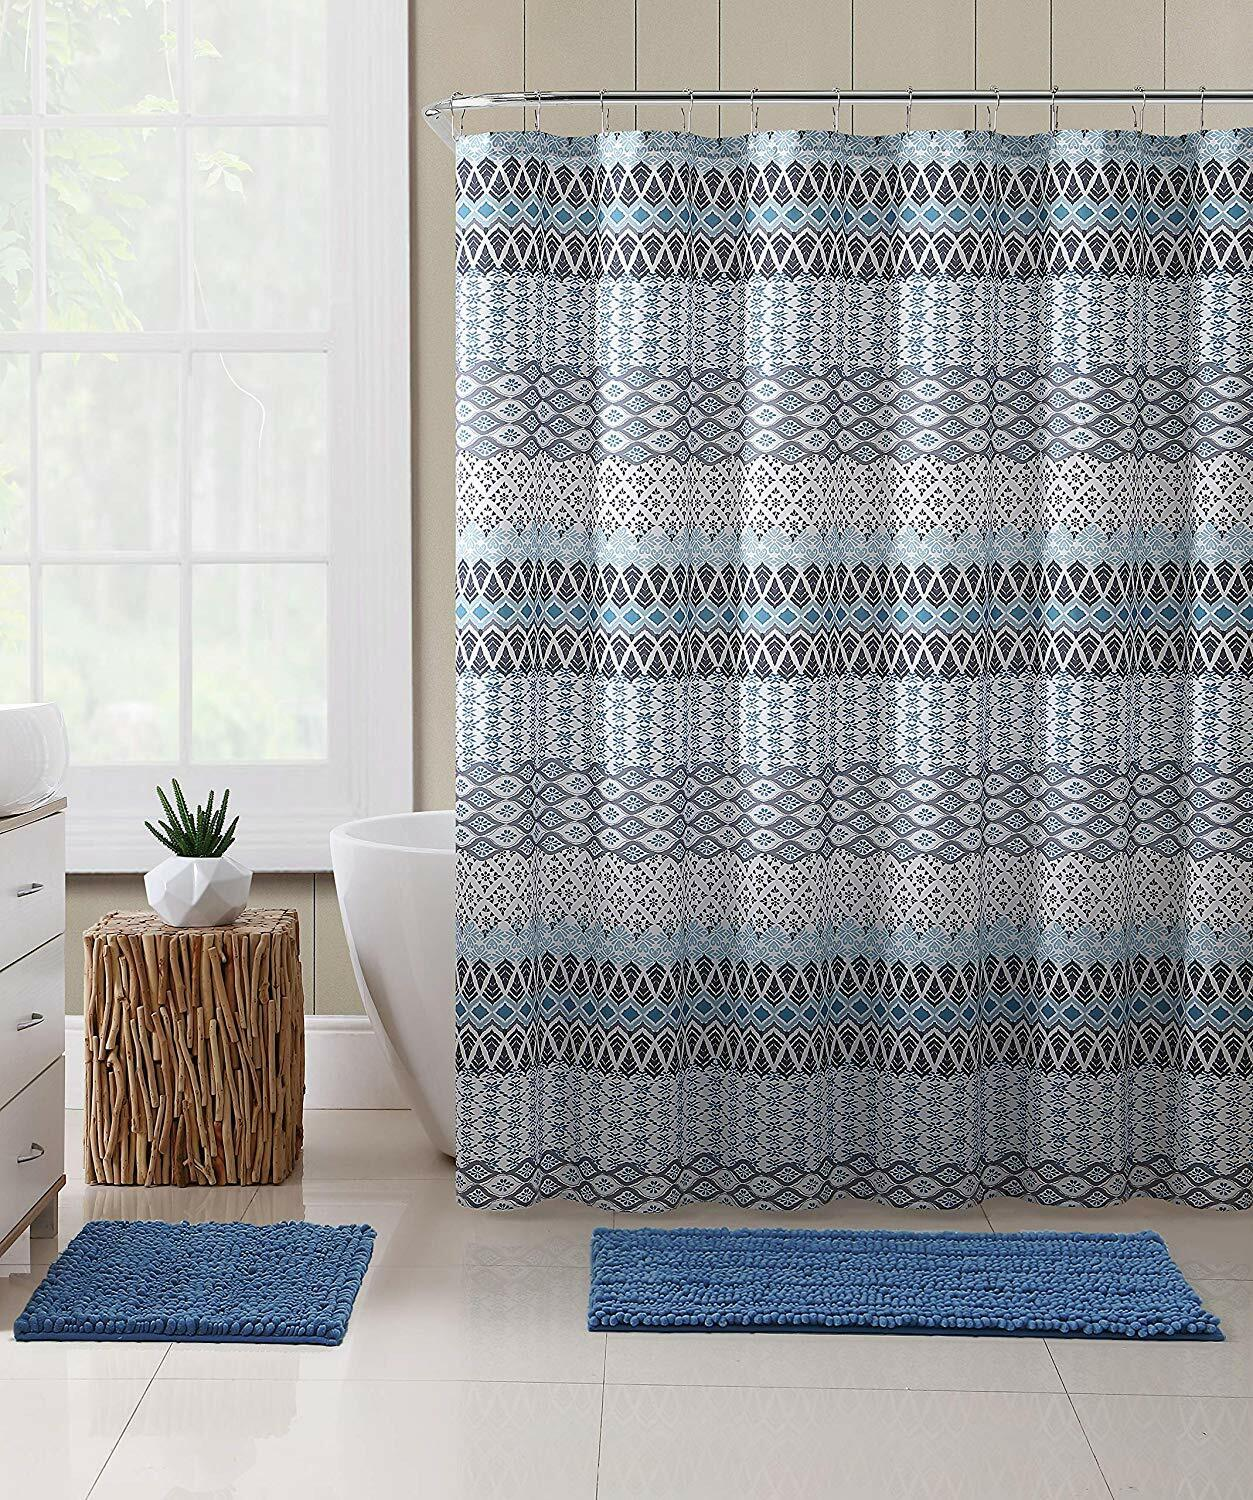 Vcny Home Teal Blue Gray Beige Fabric Shower Curtain Floral Geometric Patterned